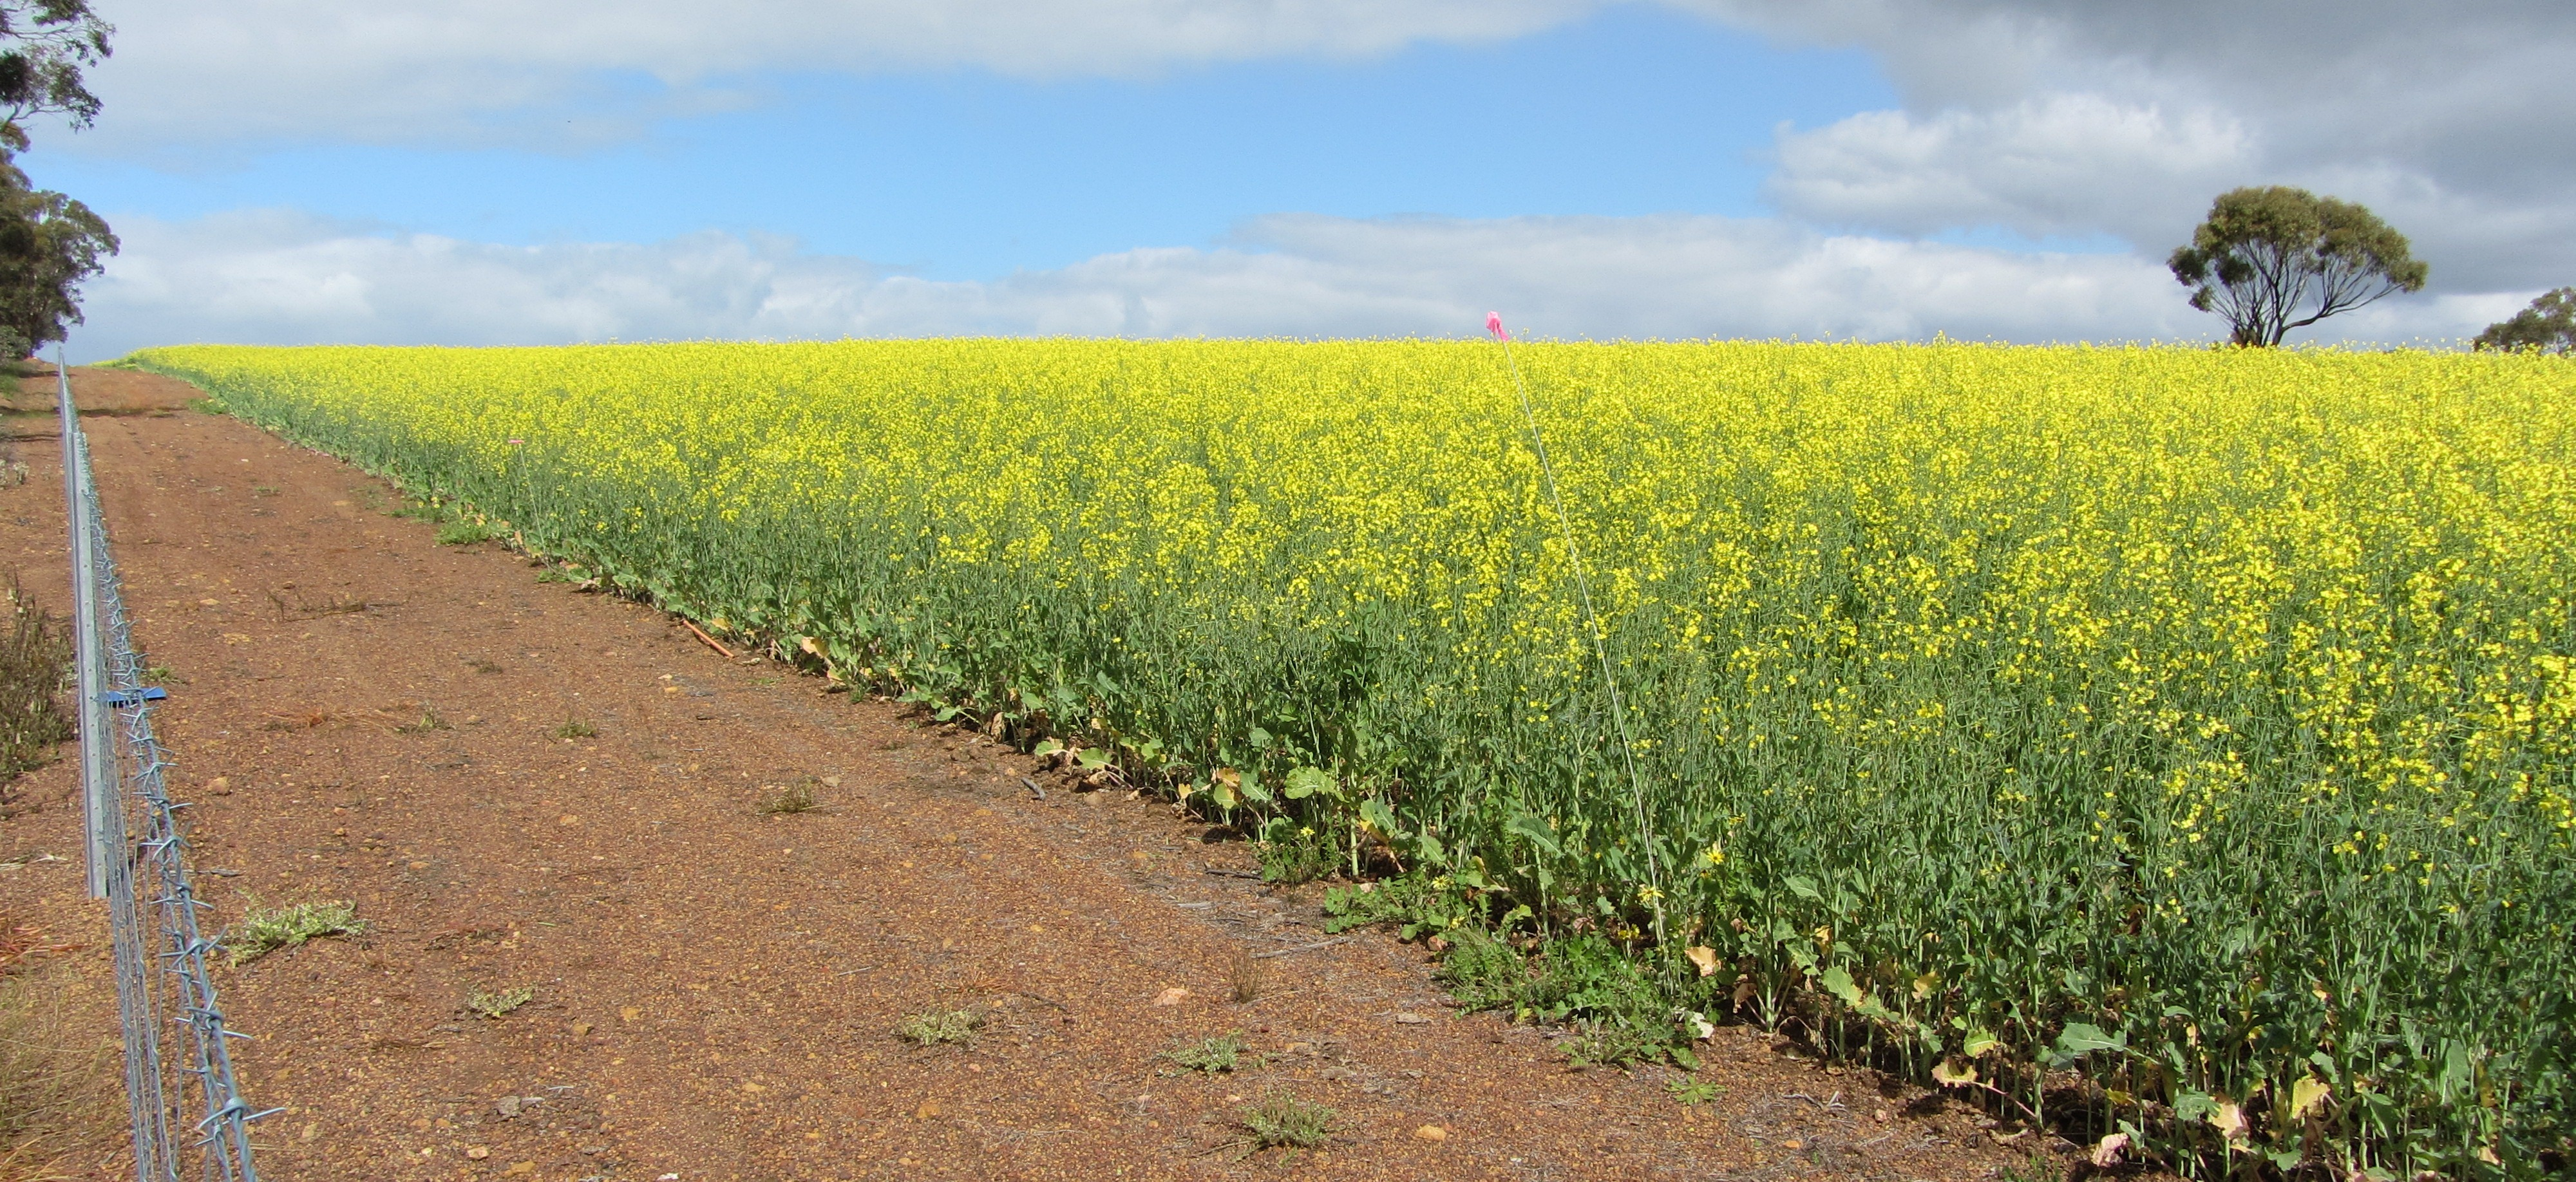 Image of a canola crop and fenceline